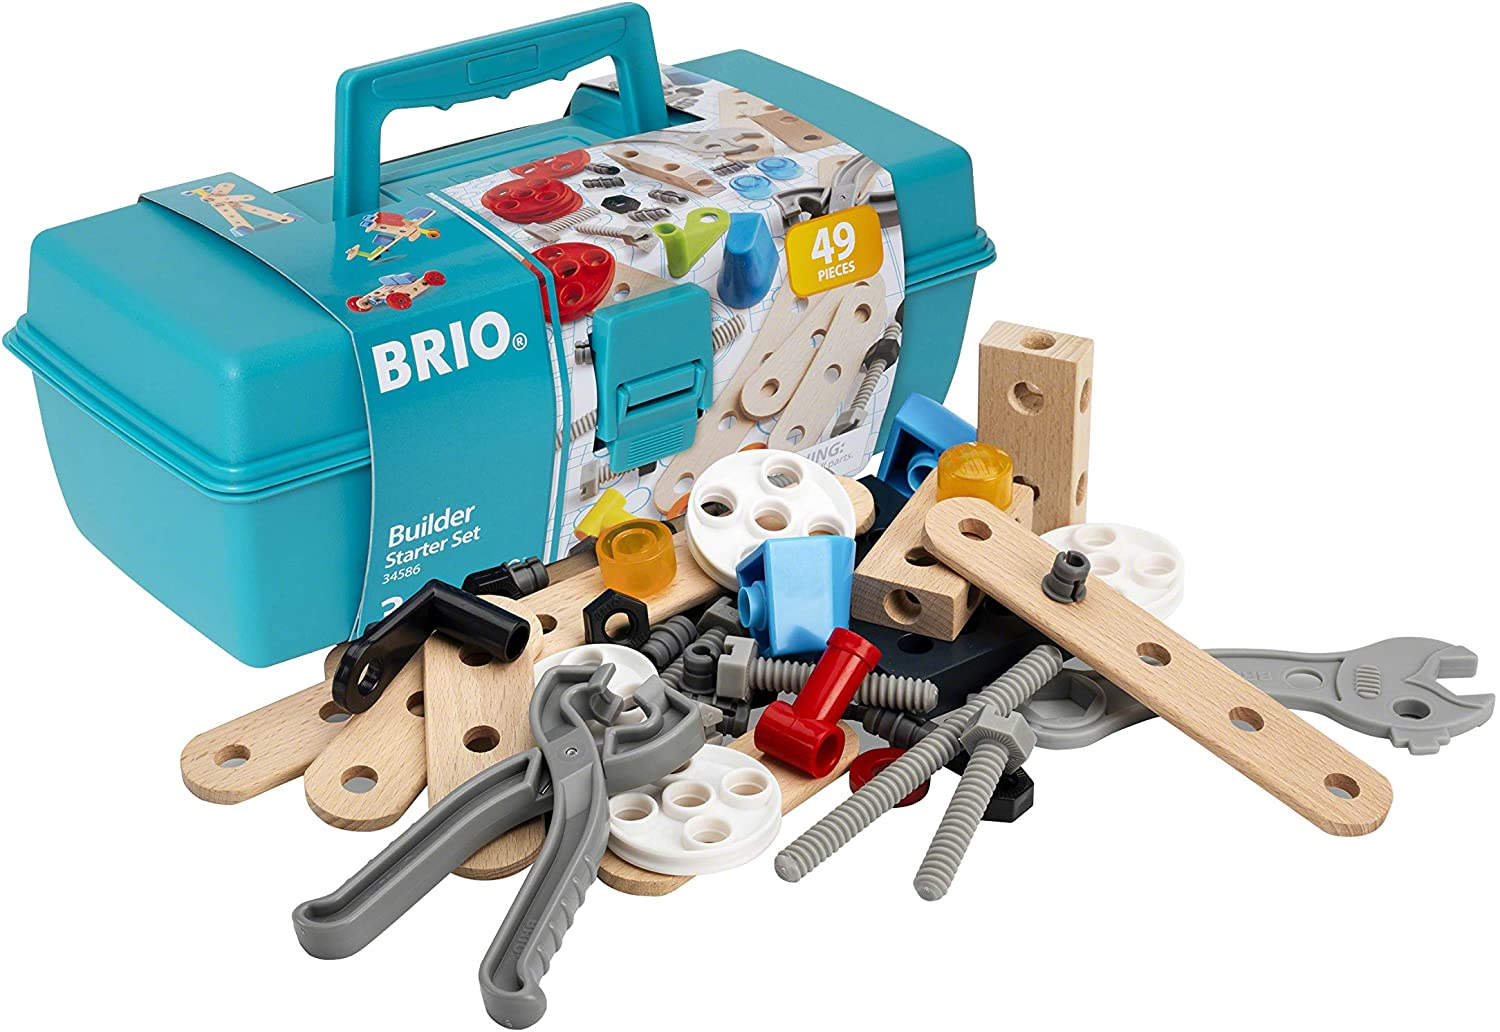 BRIO Builder 34586 - Builder Starter Set - 49 Piece Building Set STEM Toy with Wood and Plastic Pieces for Kids Age 3 and Up